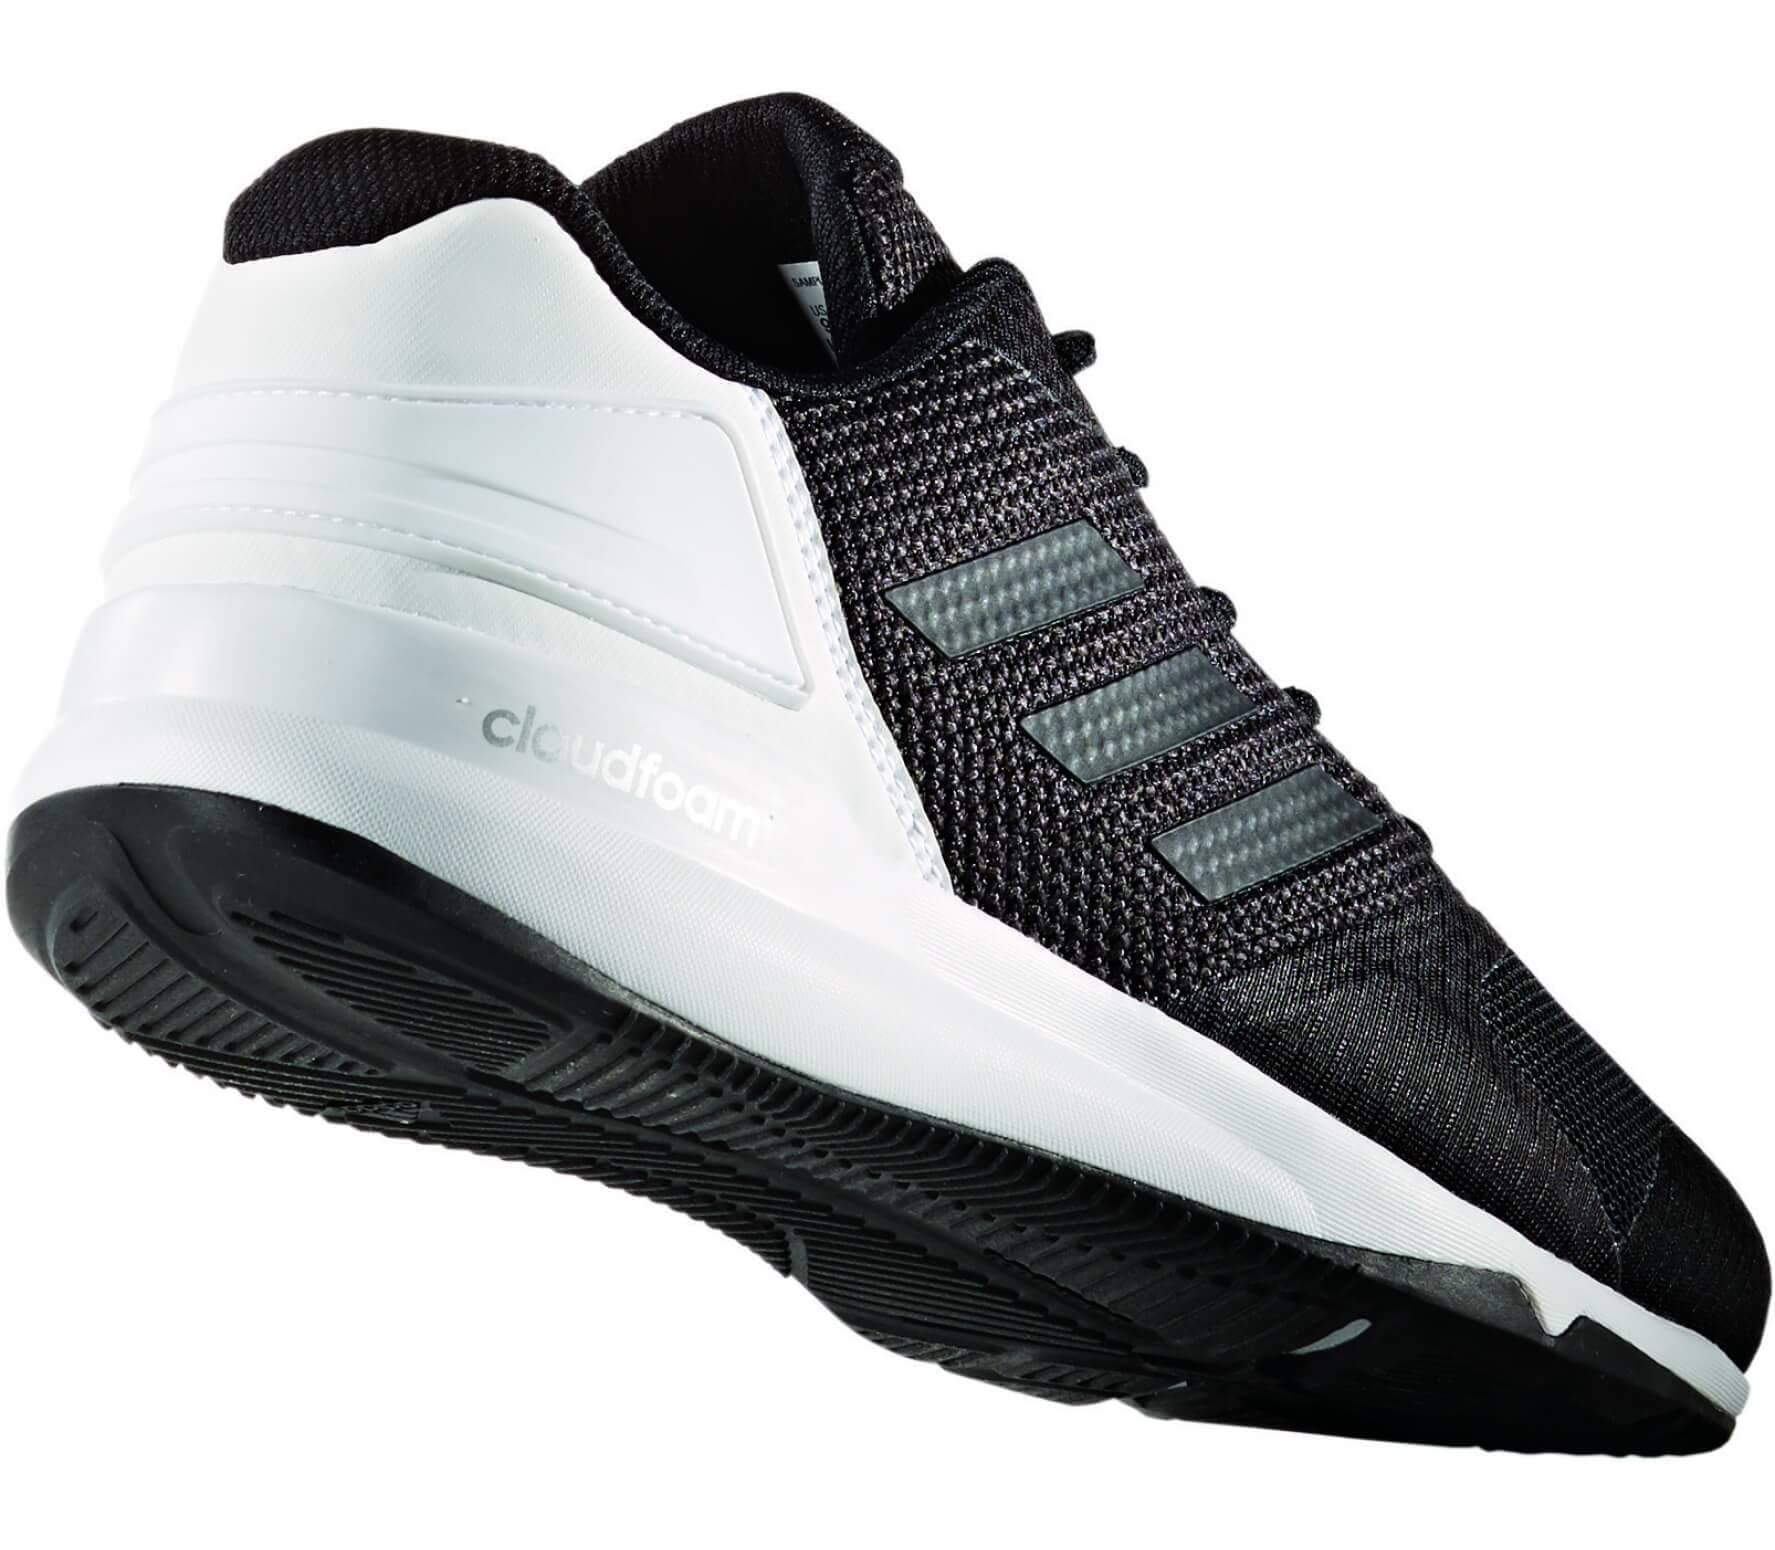 new style f4337 2c480 Adidas - Crazy Train 2 Cloudfoam mens training shoes (blackwhite)